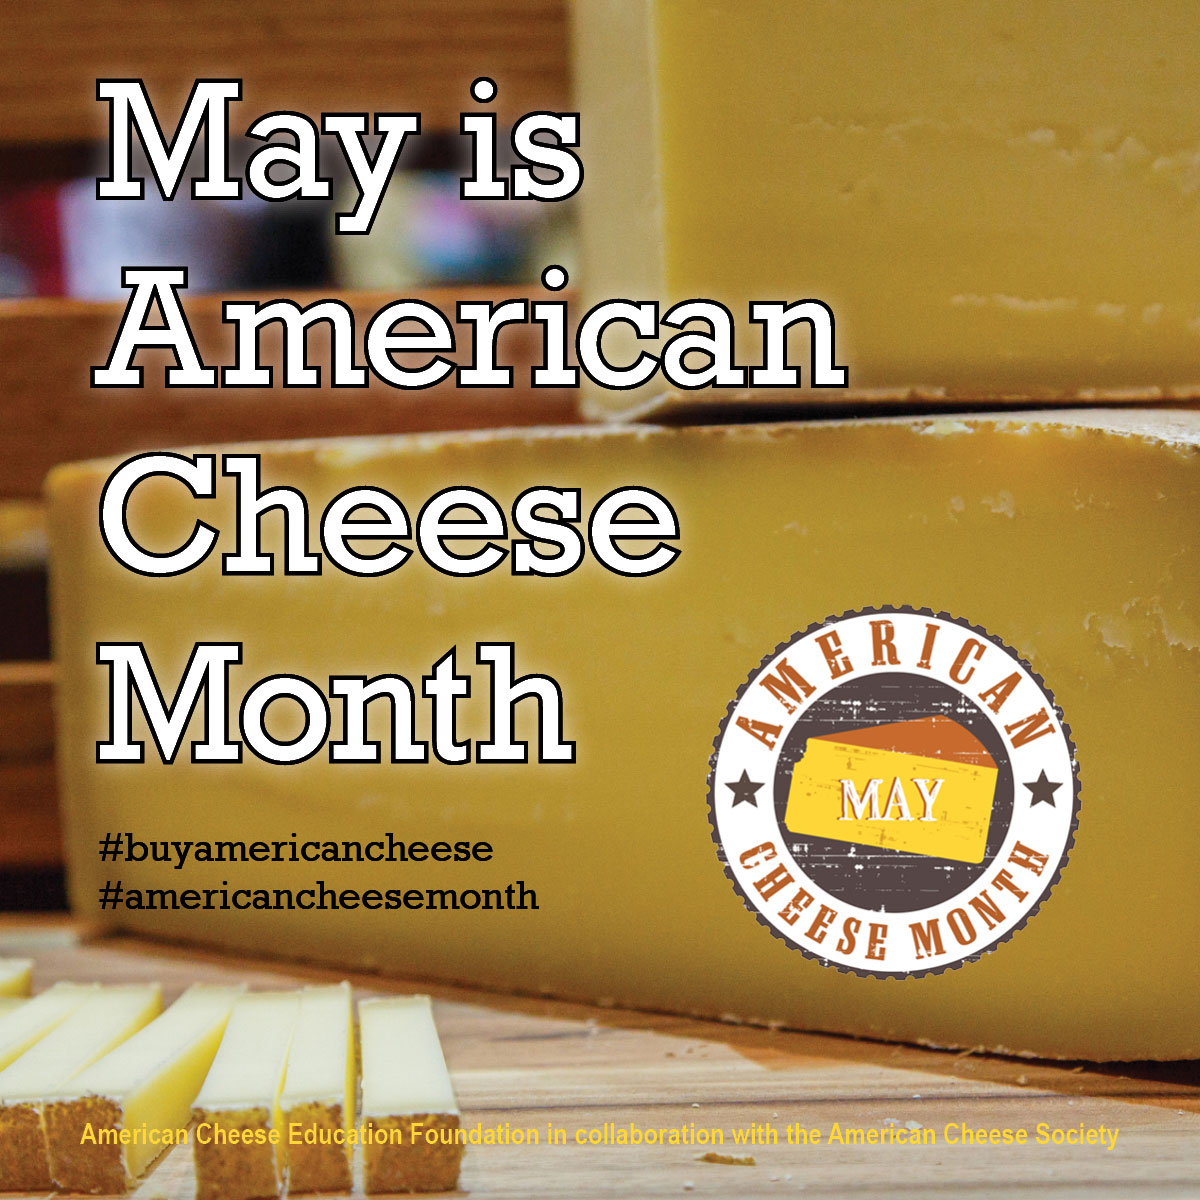 May is American Cheese Month!